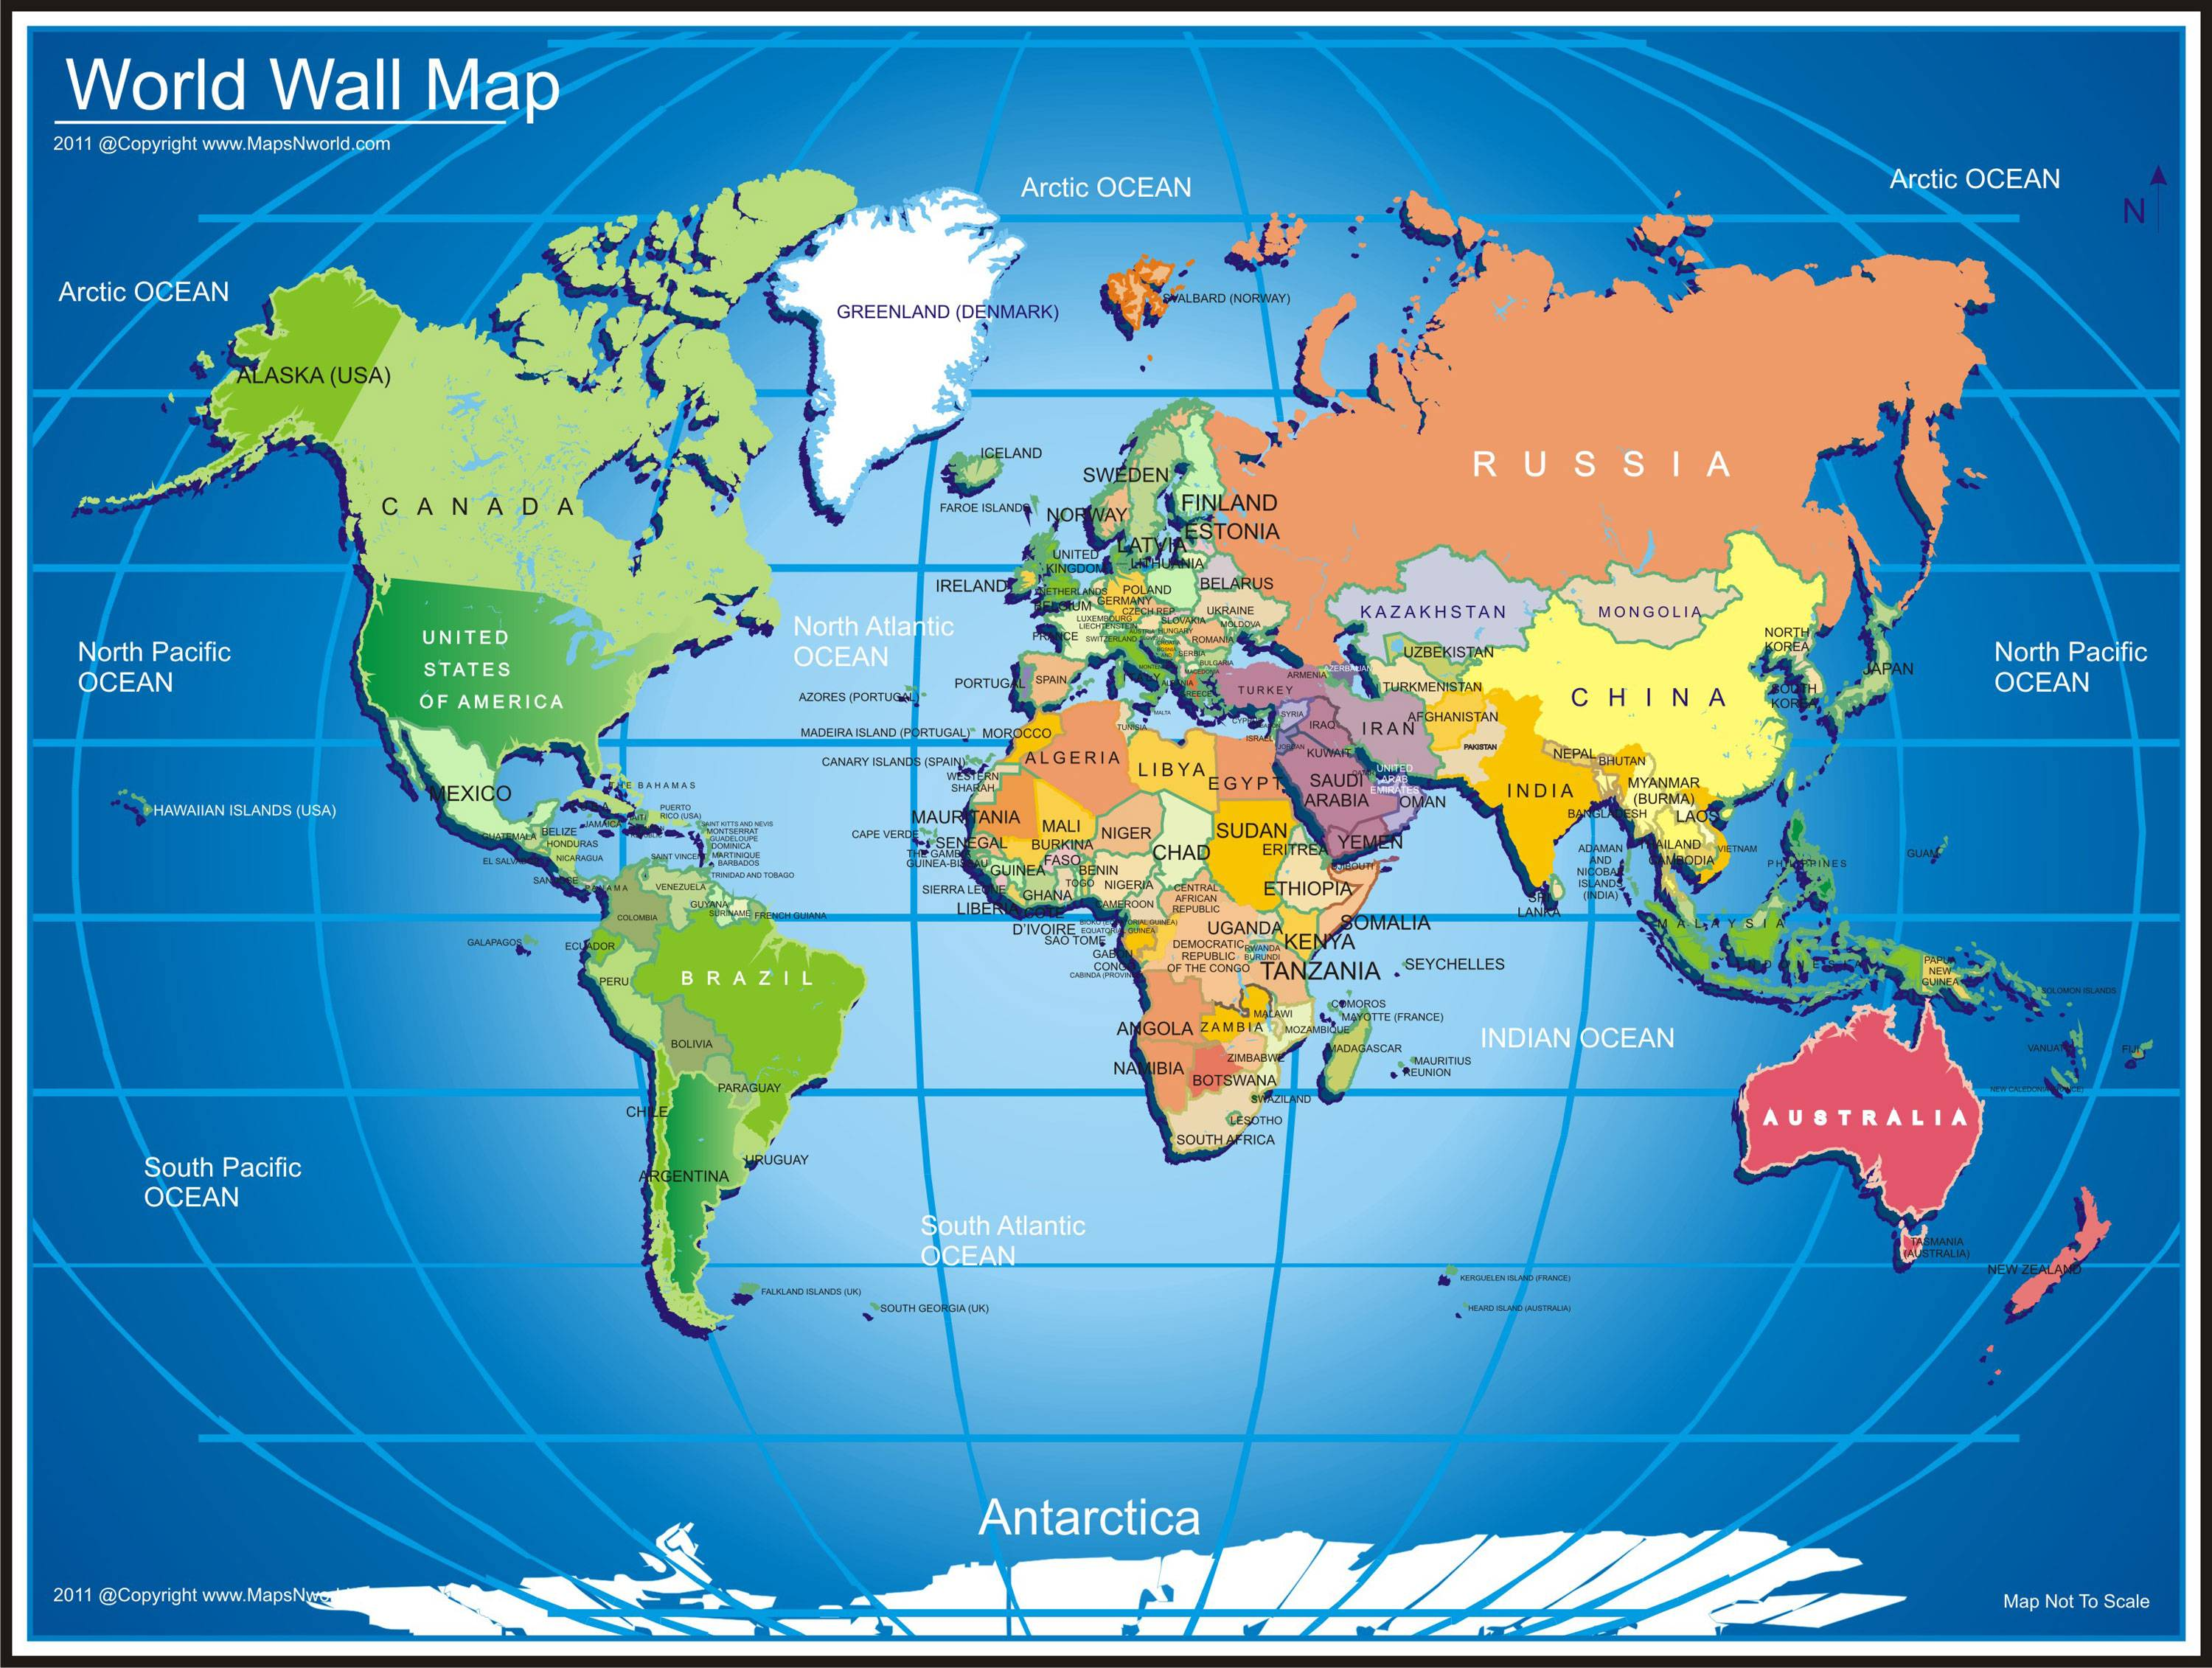 World map wallpaper hd pixelstalk colorful world map wallpaper 3 gumiabroncs Image collections